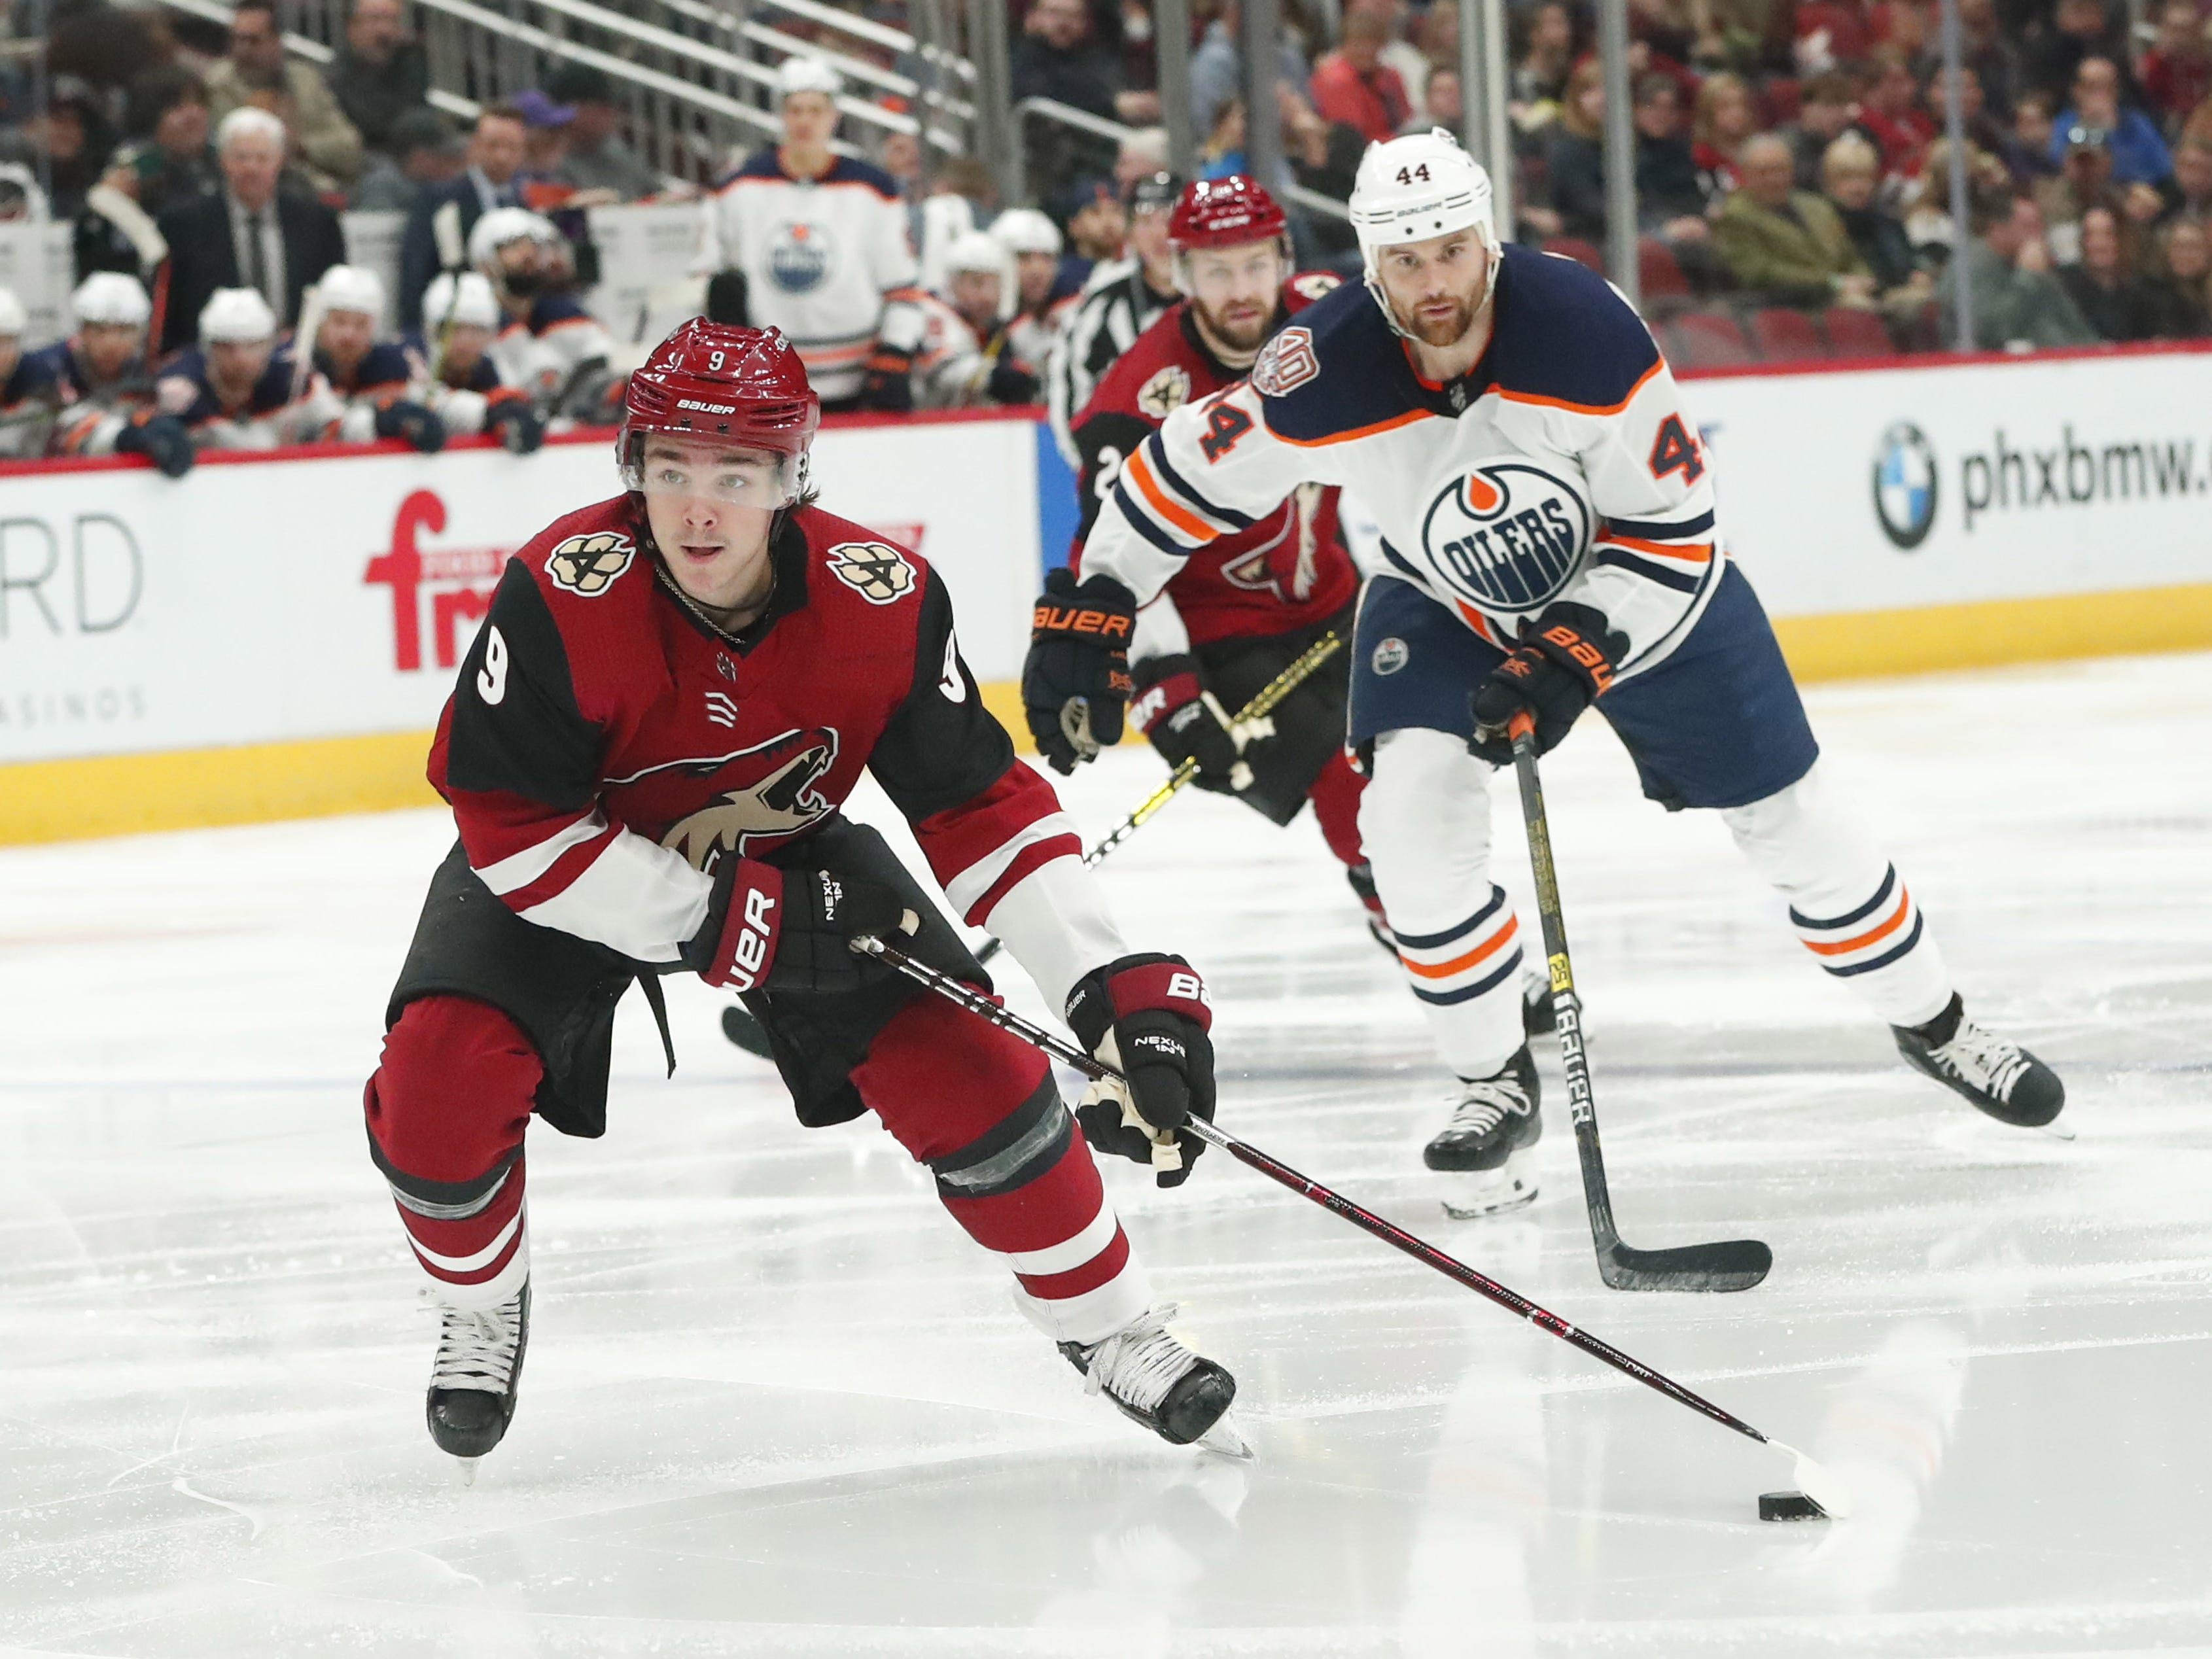 Arizona Coyotes center Clayton Keller (9) prepares to shoot while defended by Edmonton Oilers right wing Zack Kassian (44) during the second period in Glendale January 2, 2019.